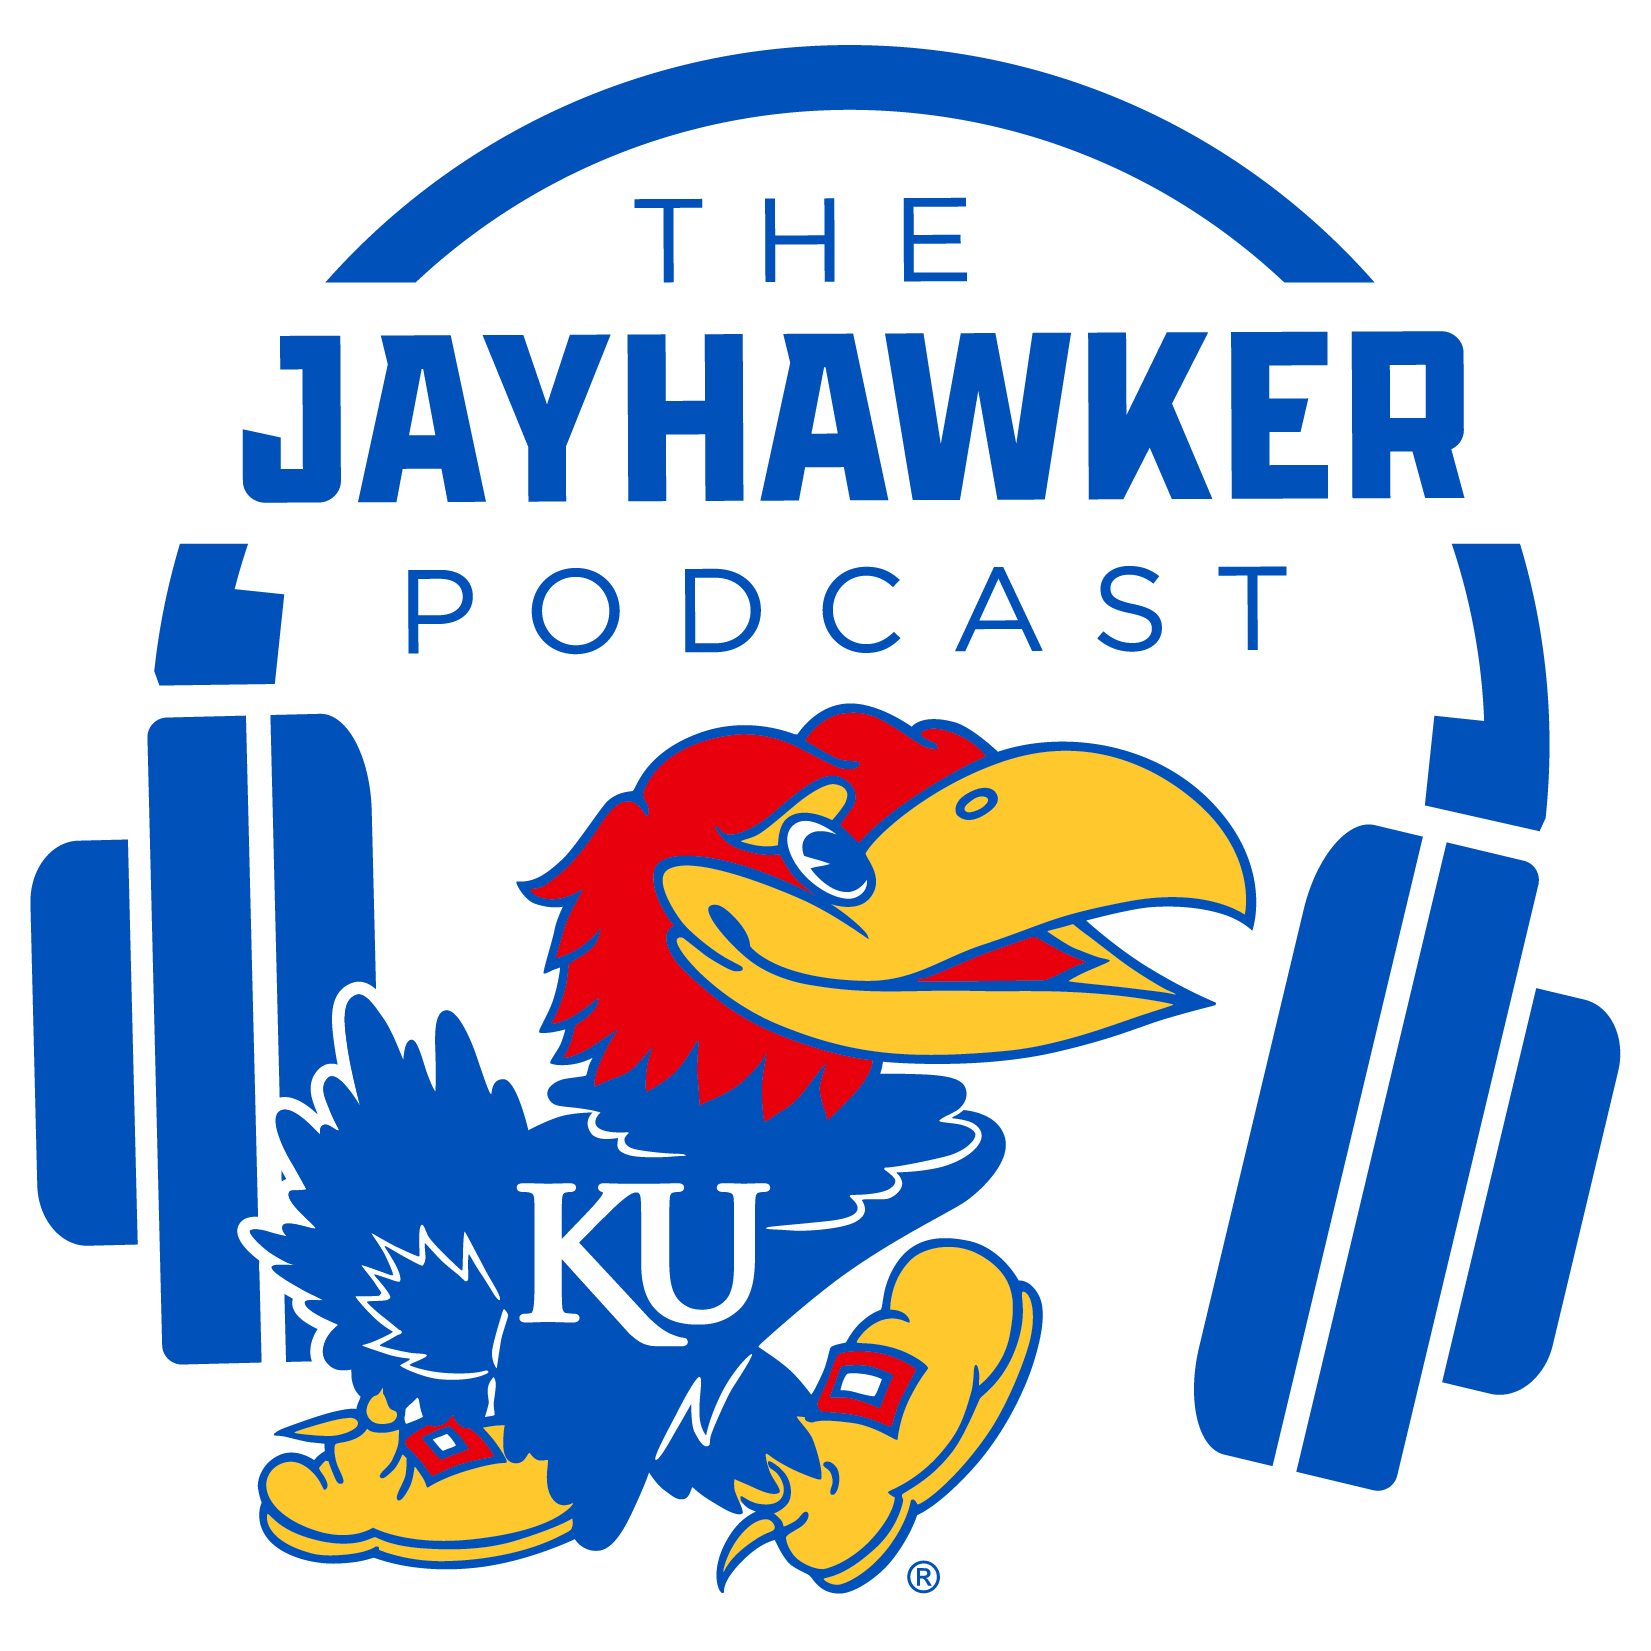 The Jayhawker Podcast show art